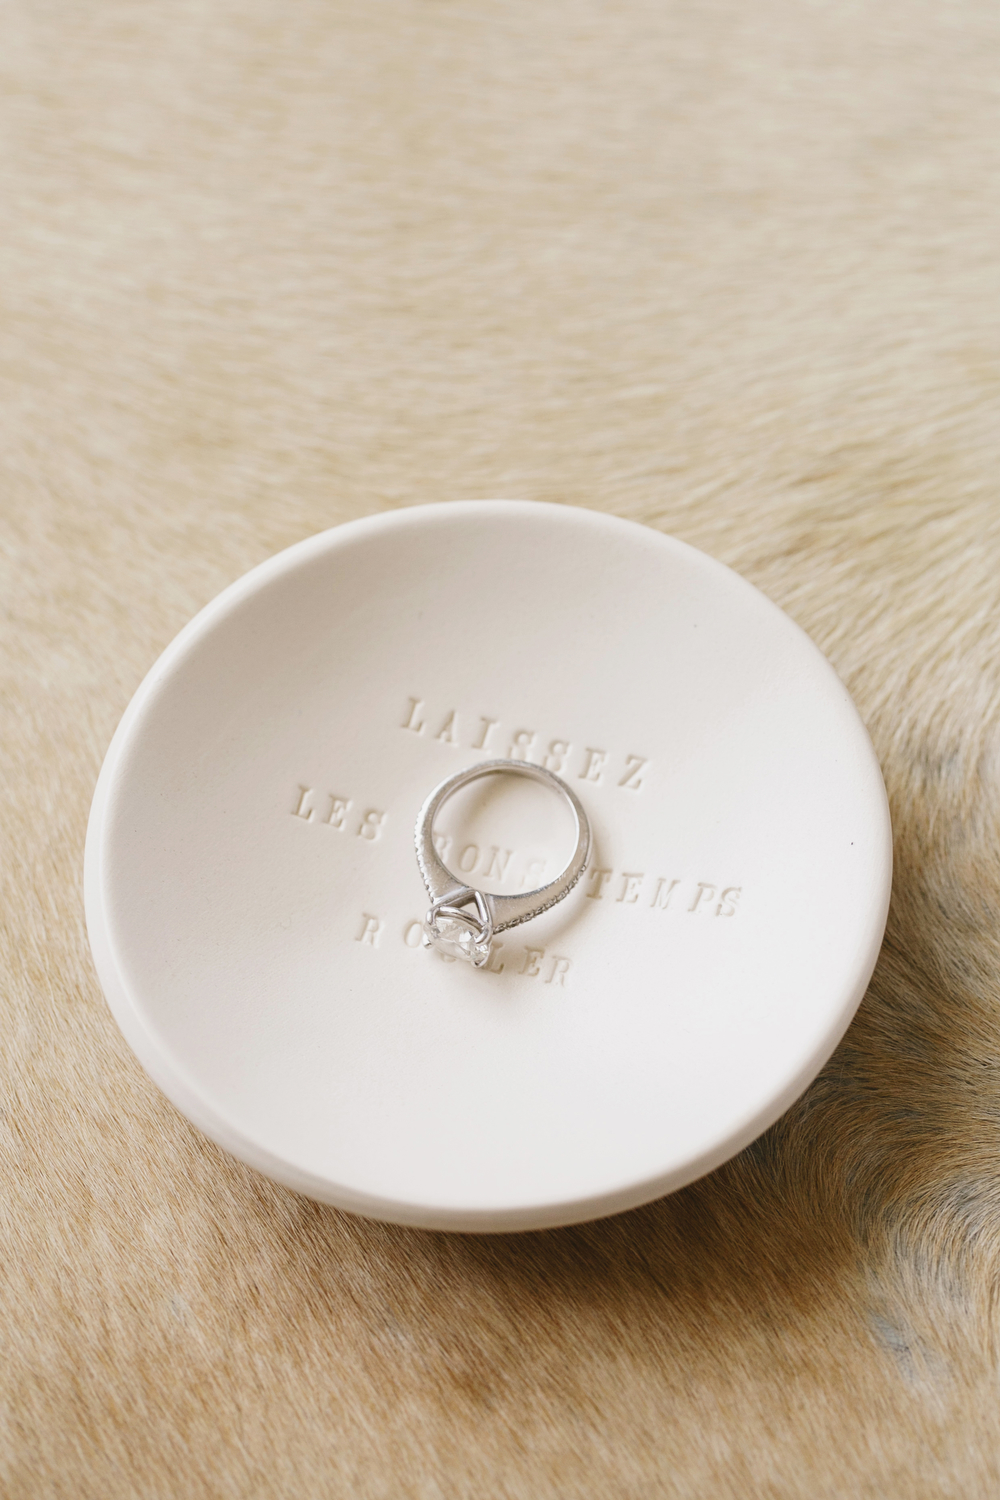 detail of diamond engagement ring in white ceramic ring dish withe typed letters on a cowhide rug background